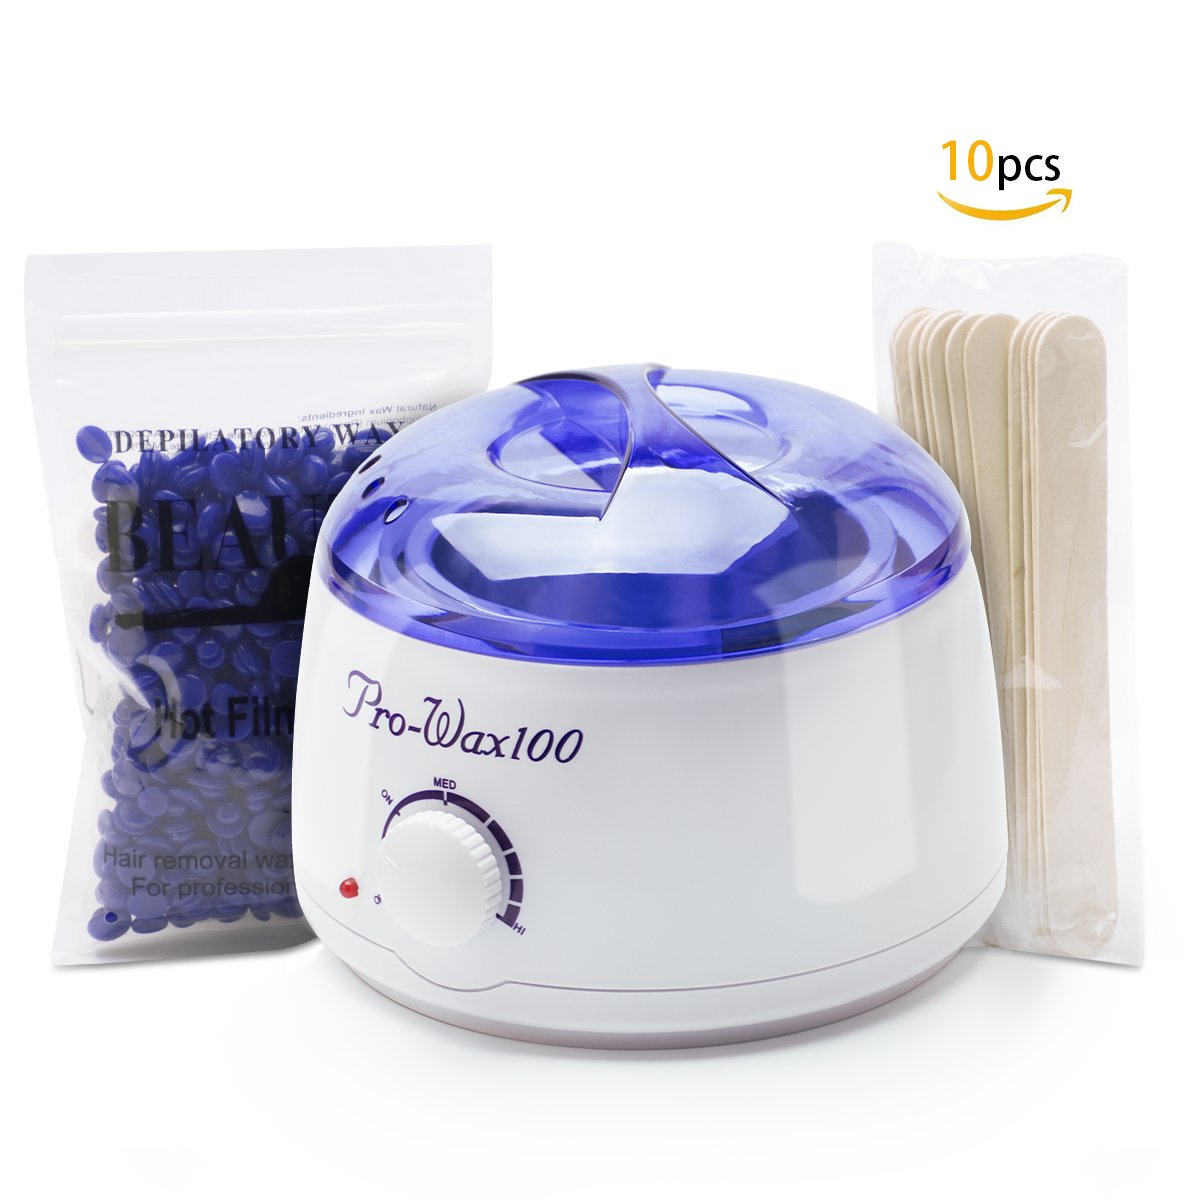 Wax Warmer for Hair Removal, VERKB Hard Wax Heater with Rapid Melting Pot Lavender Beads for Depilatory, 10 Applicator Sticks